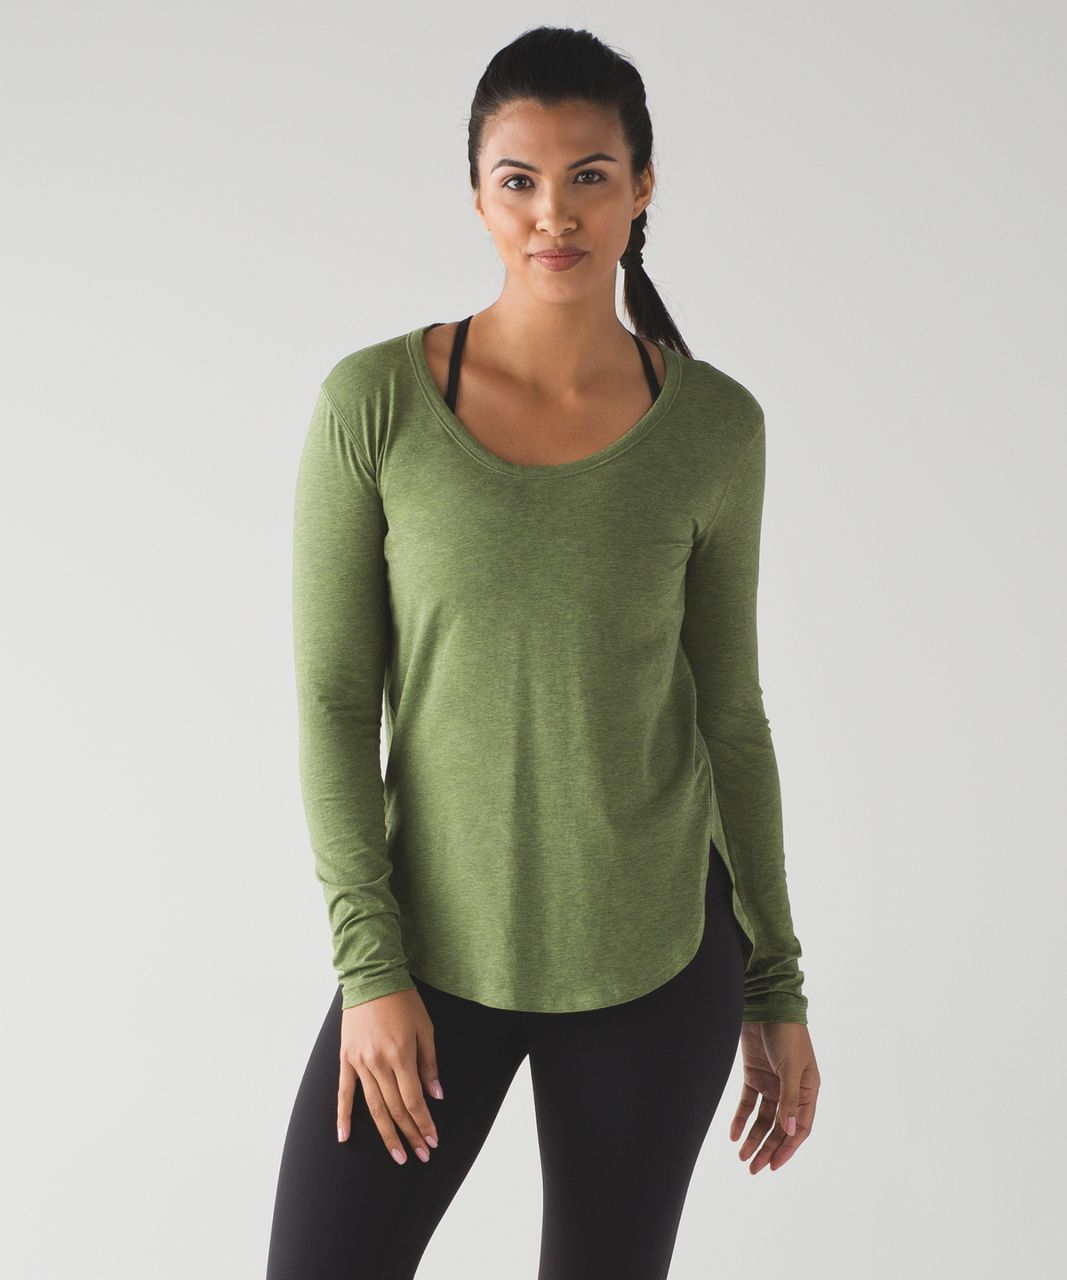 32efcb79d913b Color  heathered brave olive. This super soft long sleeve was designed to  tuck into your tights for a distraction-free practice.